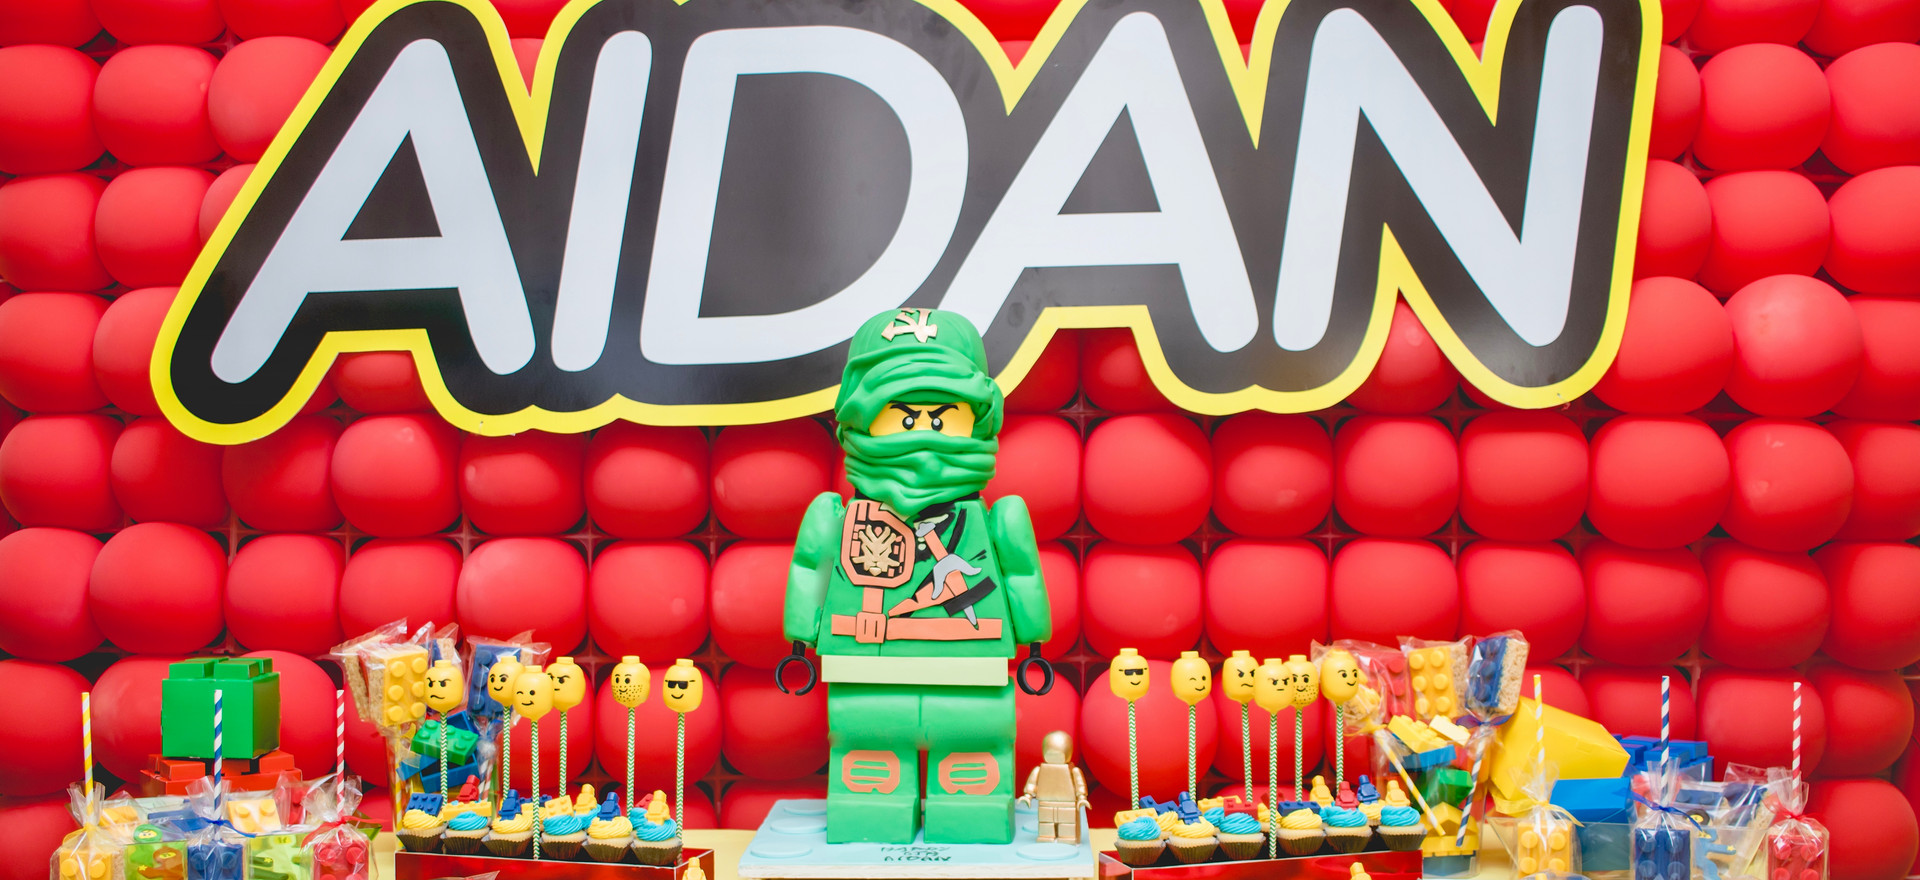 """""""Ninjago"""" Themed Dessert Bar featuring our standing 'ninjago' cake. Kindly note that treats pictured were not made by With Love By Esther James."""